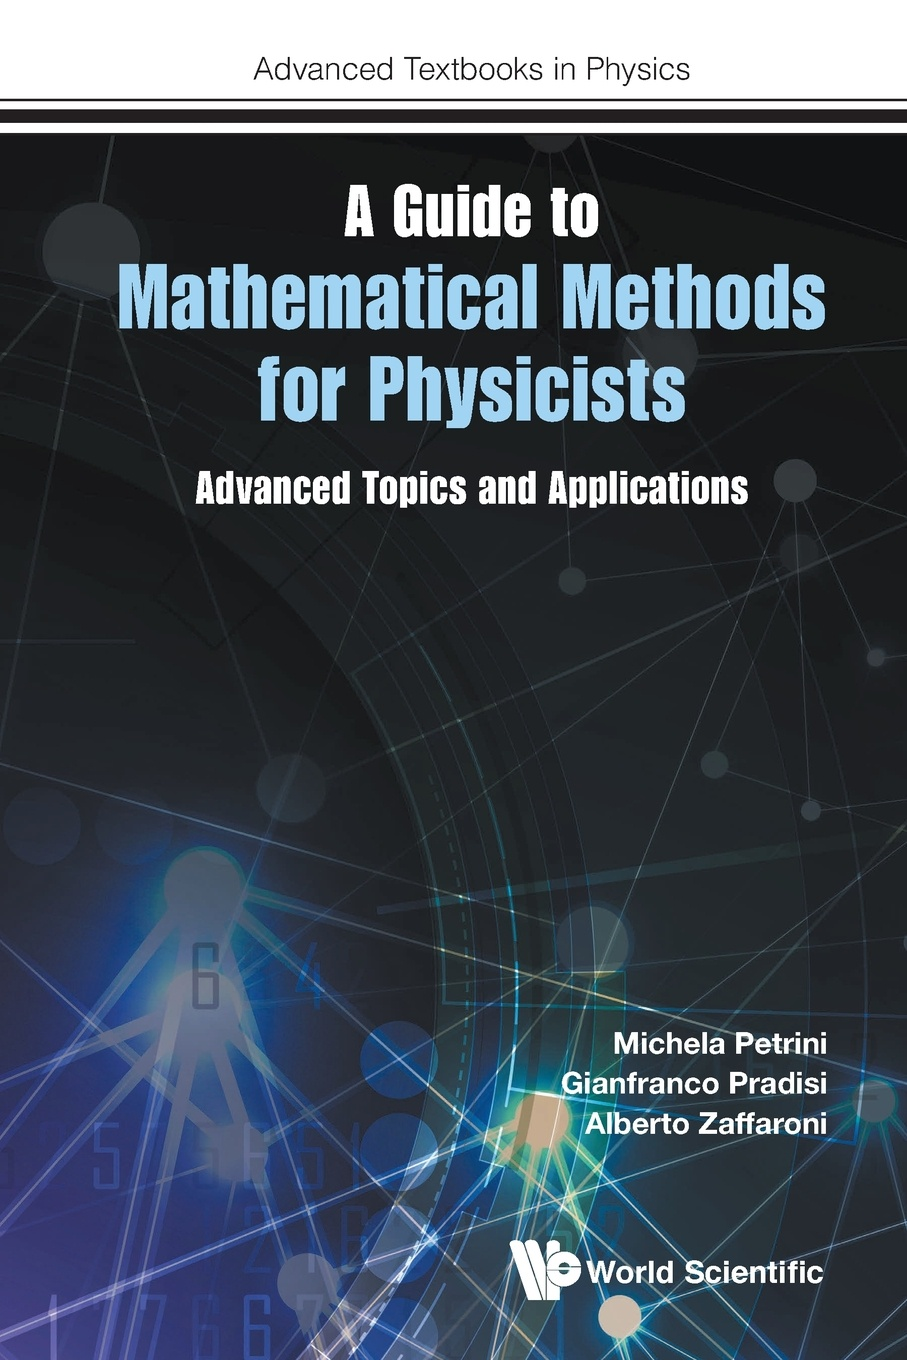 Michela Petrini, Gianfranco Pradisi, Alberto Zaffaroni A Guide to Mathematical Methods for Physicists. Advanced Topics and Applications shelemyahu zacks examples and problems in mathematical statistics